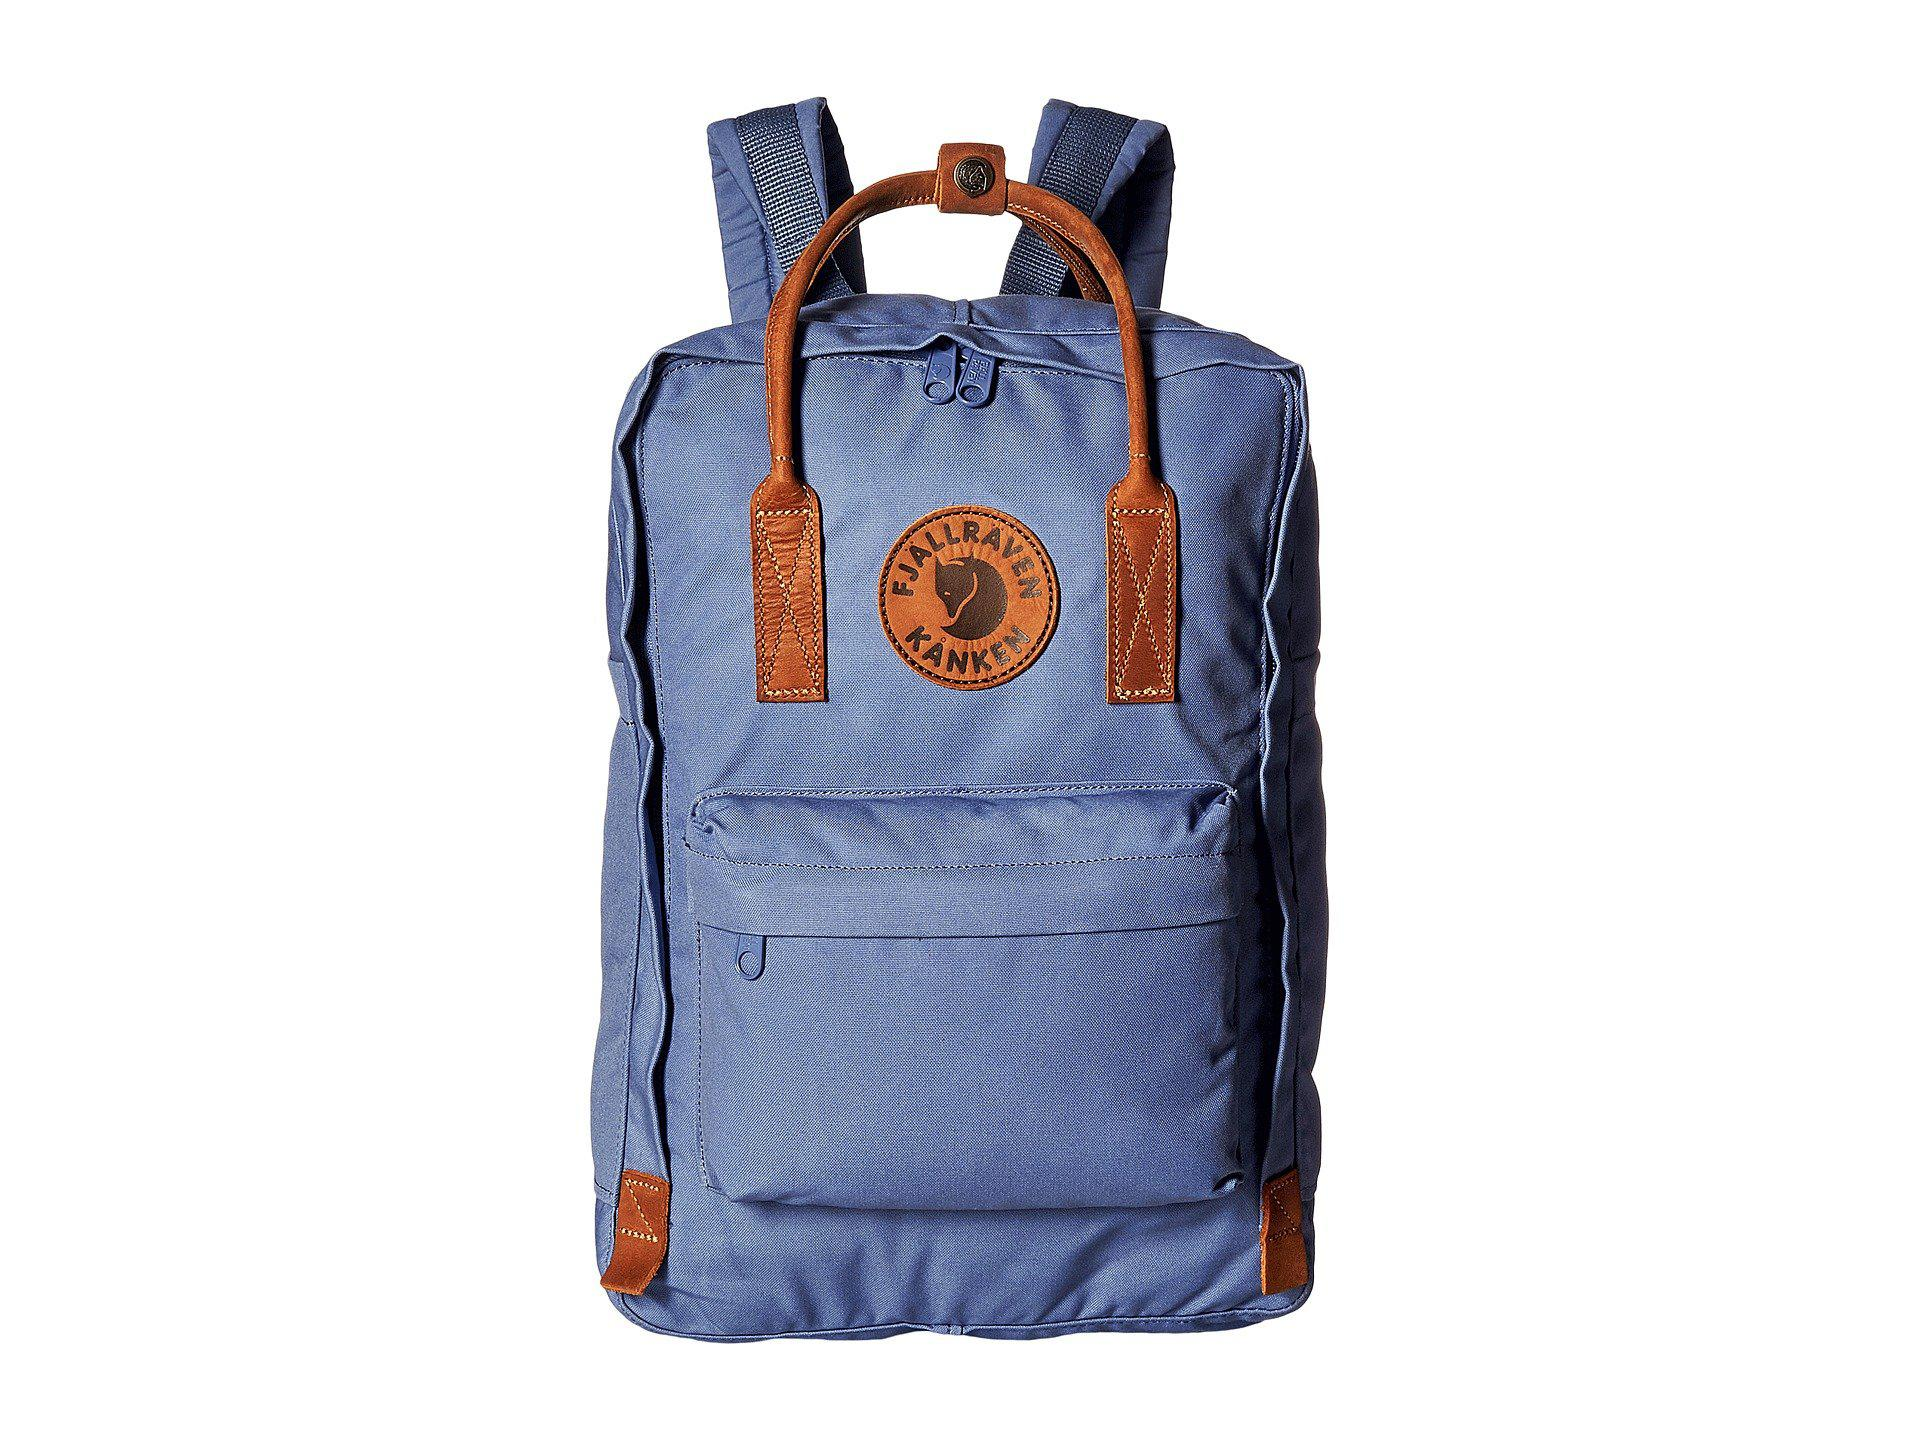 96673a1ddf0 Lyst - Fjallraven Kanken No. 2 Laptop 15 (black) Bags in Blue for Men